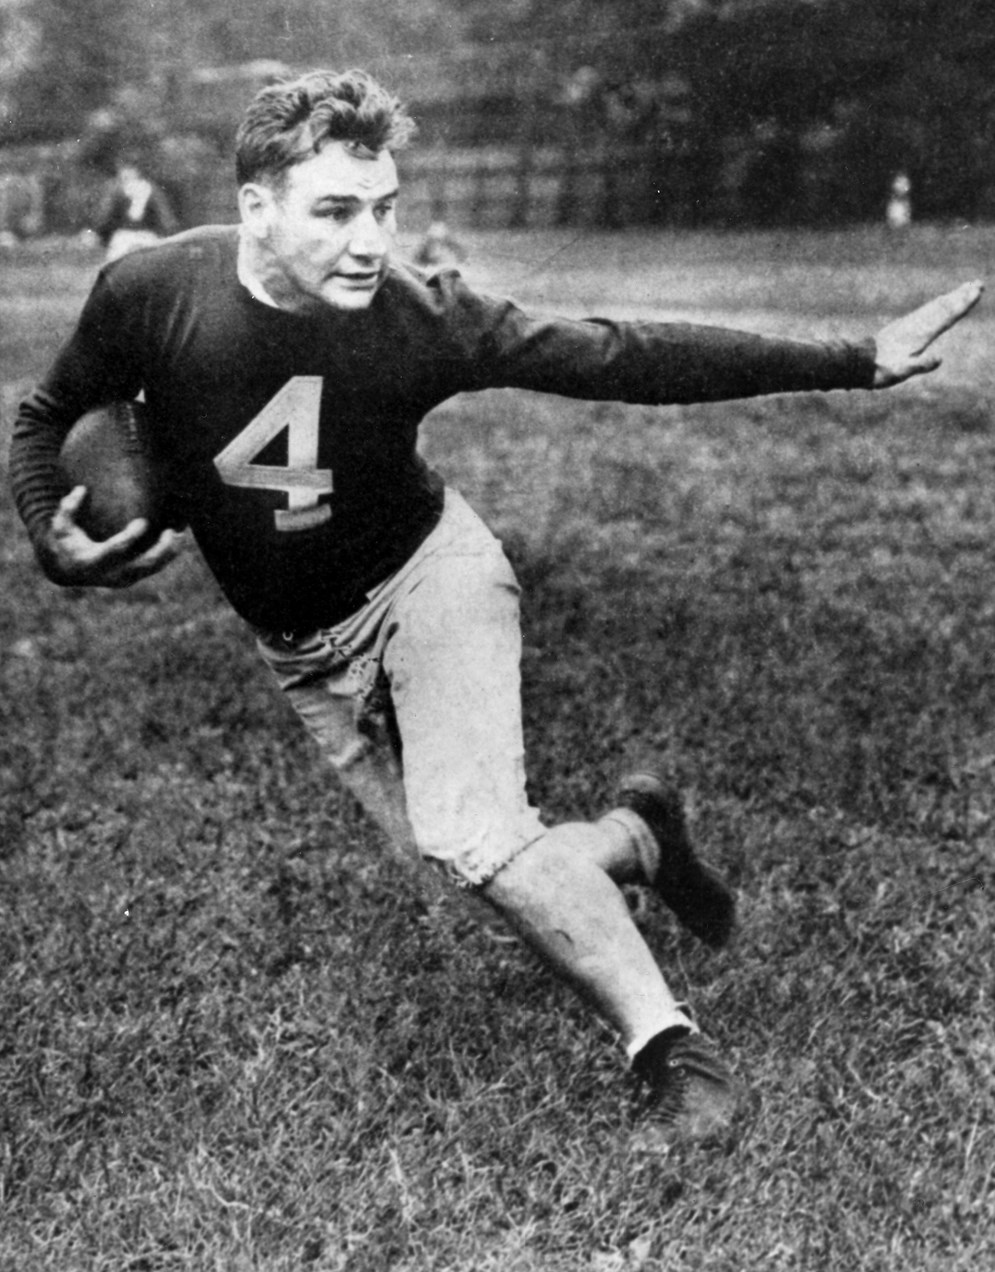 "The New York Giants drafted fullback Alphonse ""Tuffy"" Leemans in the second round of the first NFL draft, after Wellington Mara, son of team owner, Tim Mara, watched Leemans star in a college game. Three seasons later, Leemans led the Giants to the 1938 NFL championship."